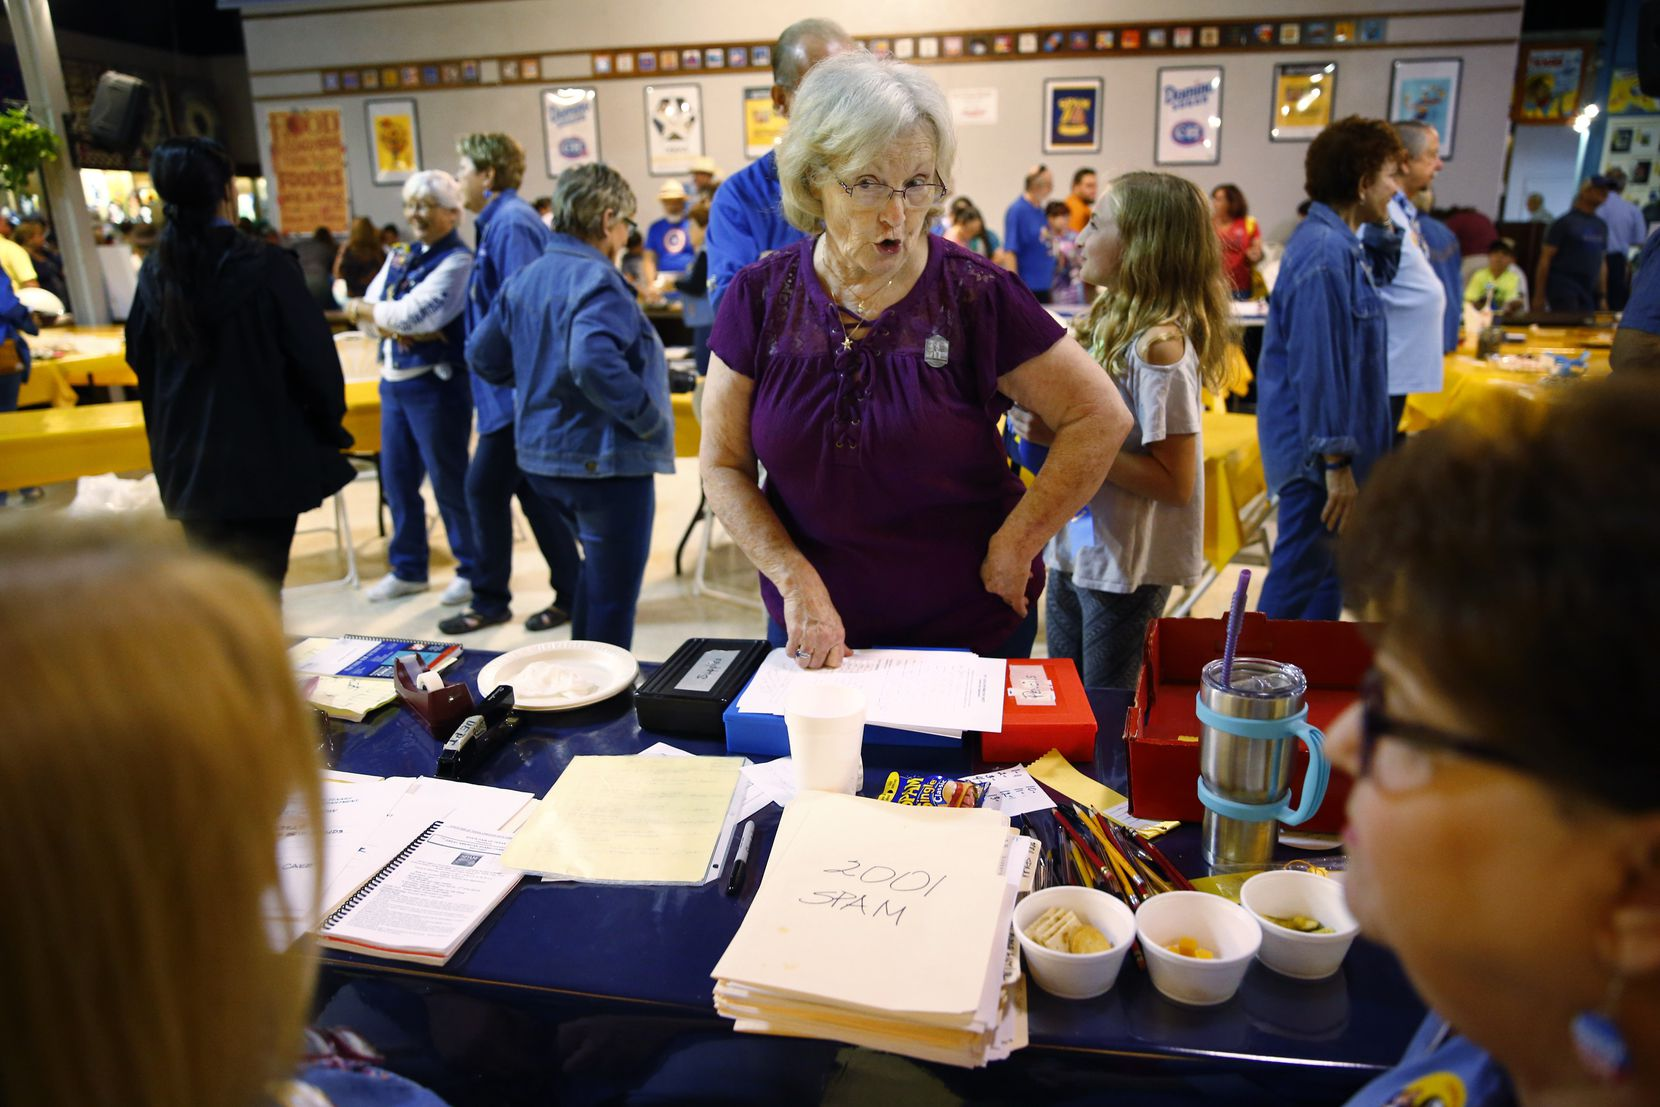 Peggy Garmon brags about her granddaughters to administrators of the contest at the State Fair of Texas on Oct. 6.